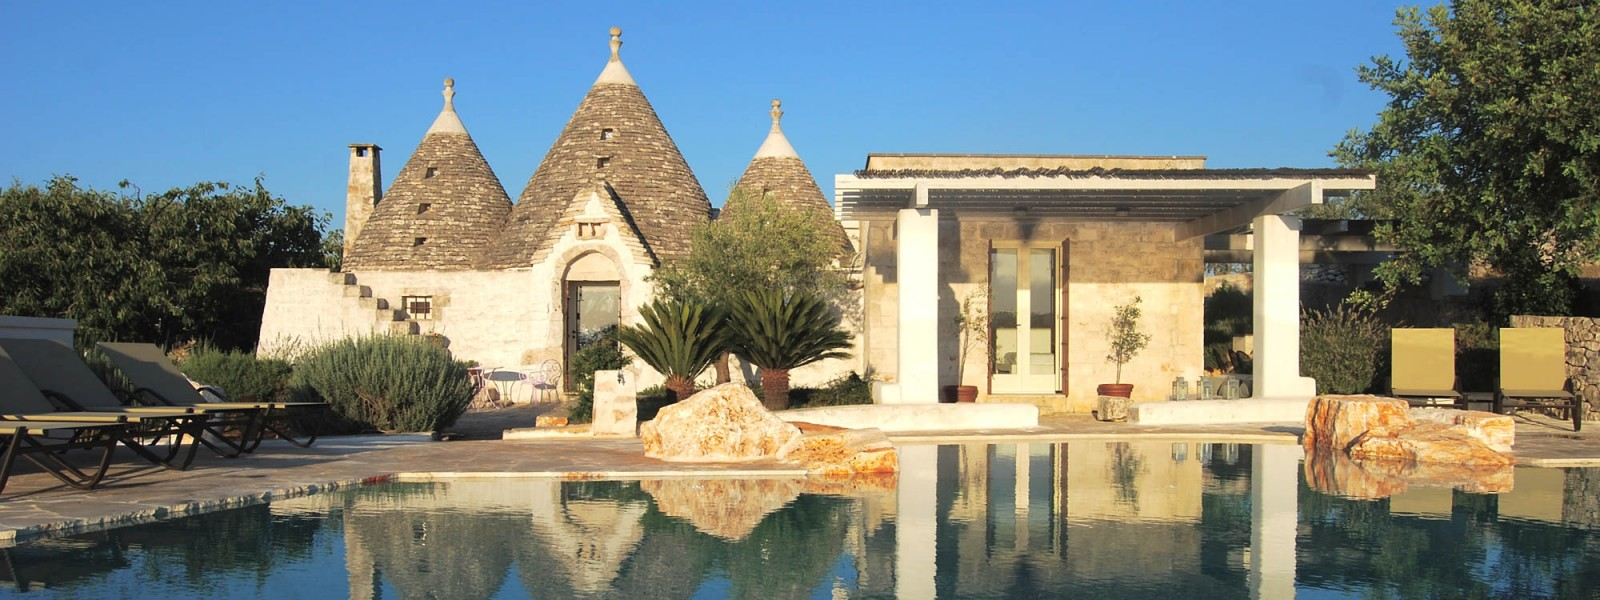 Trullo Occidente